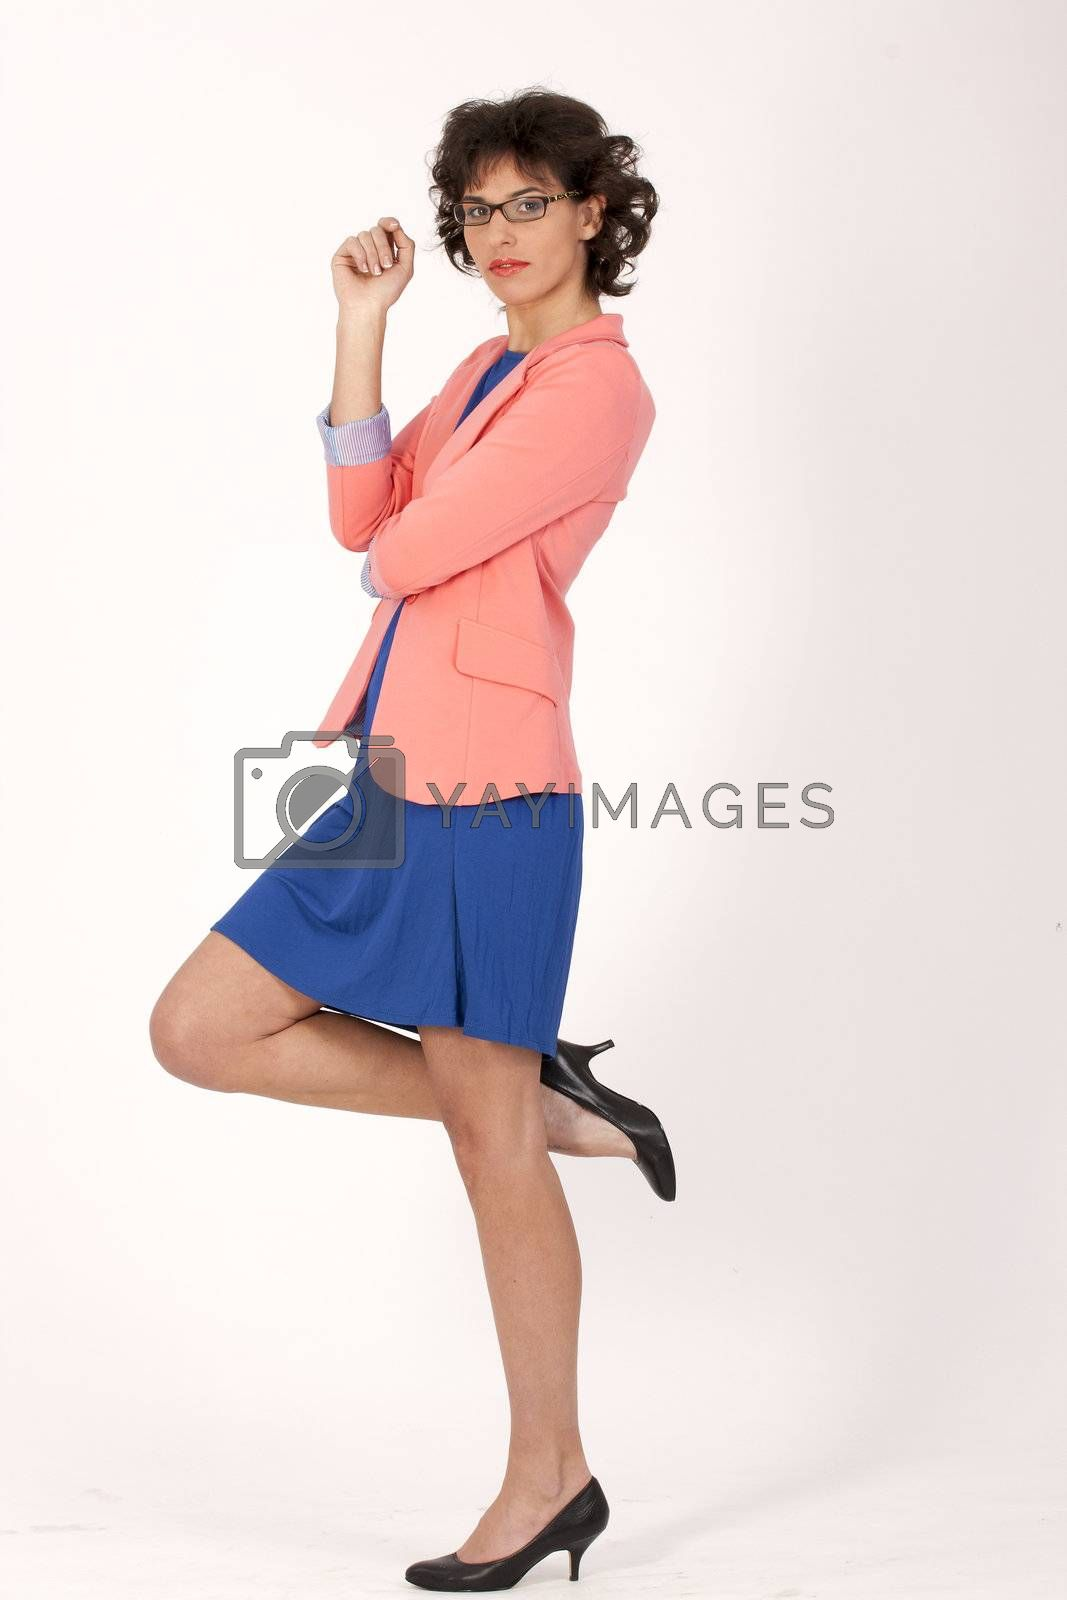 Fashionable woman with glasses in a business suit